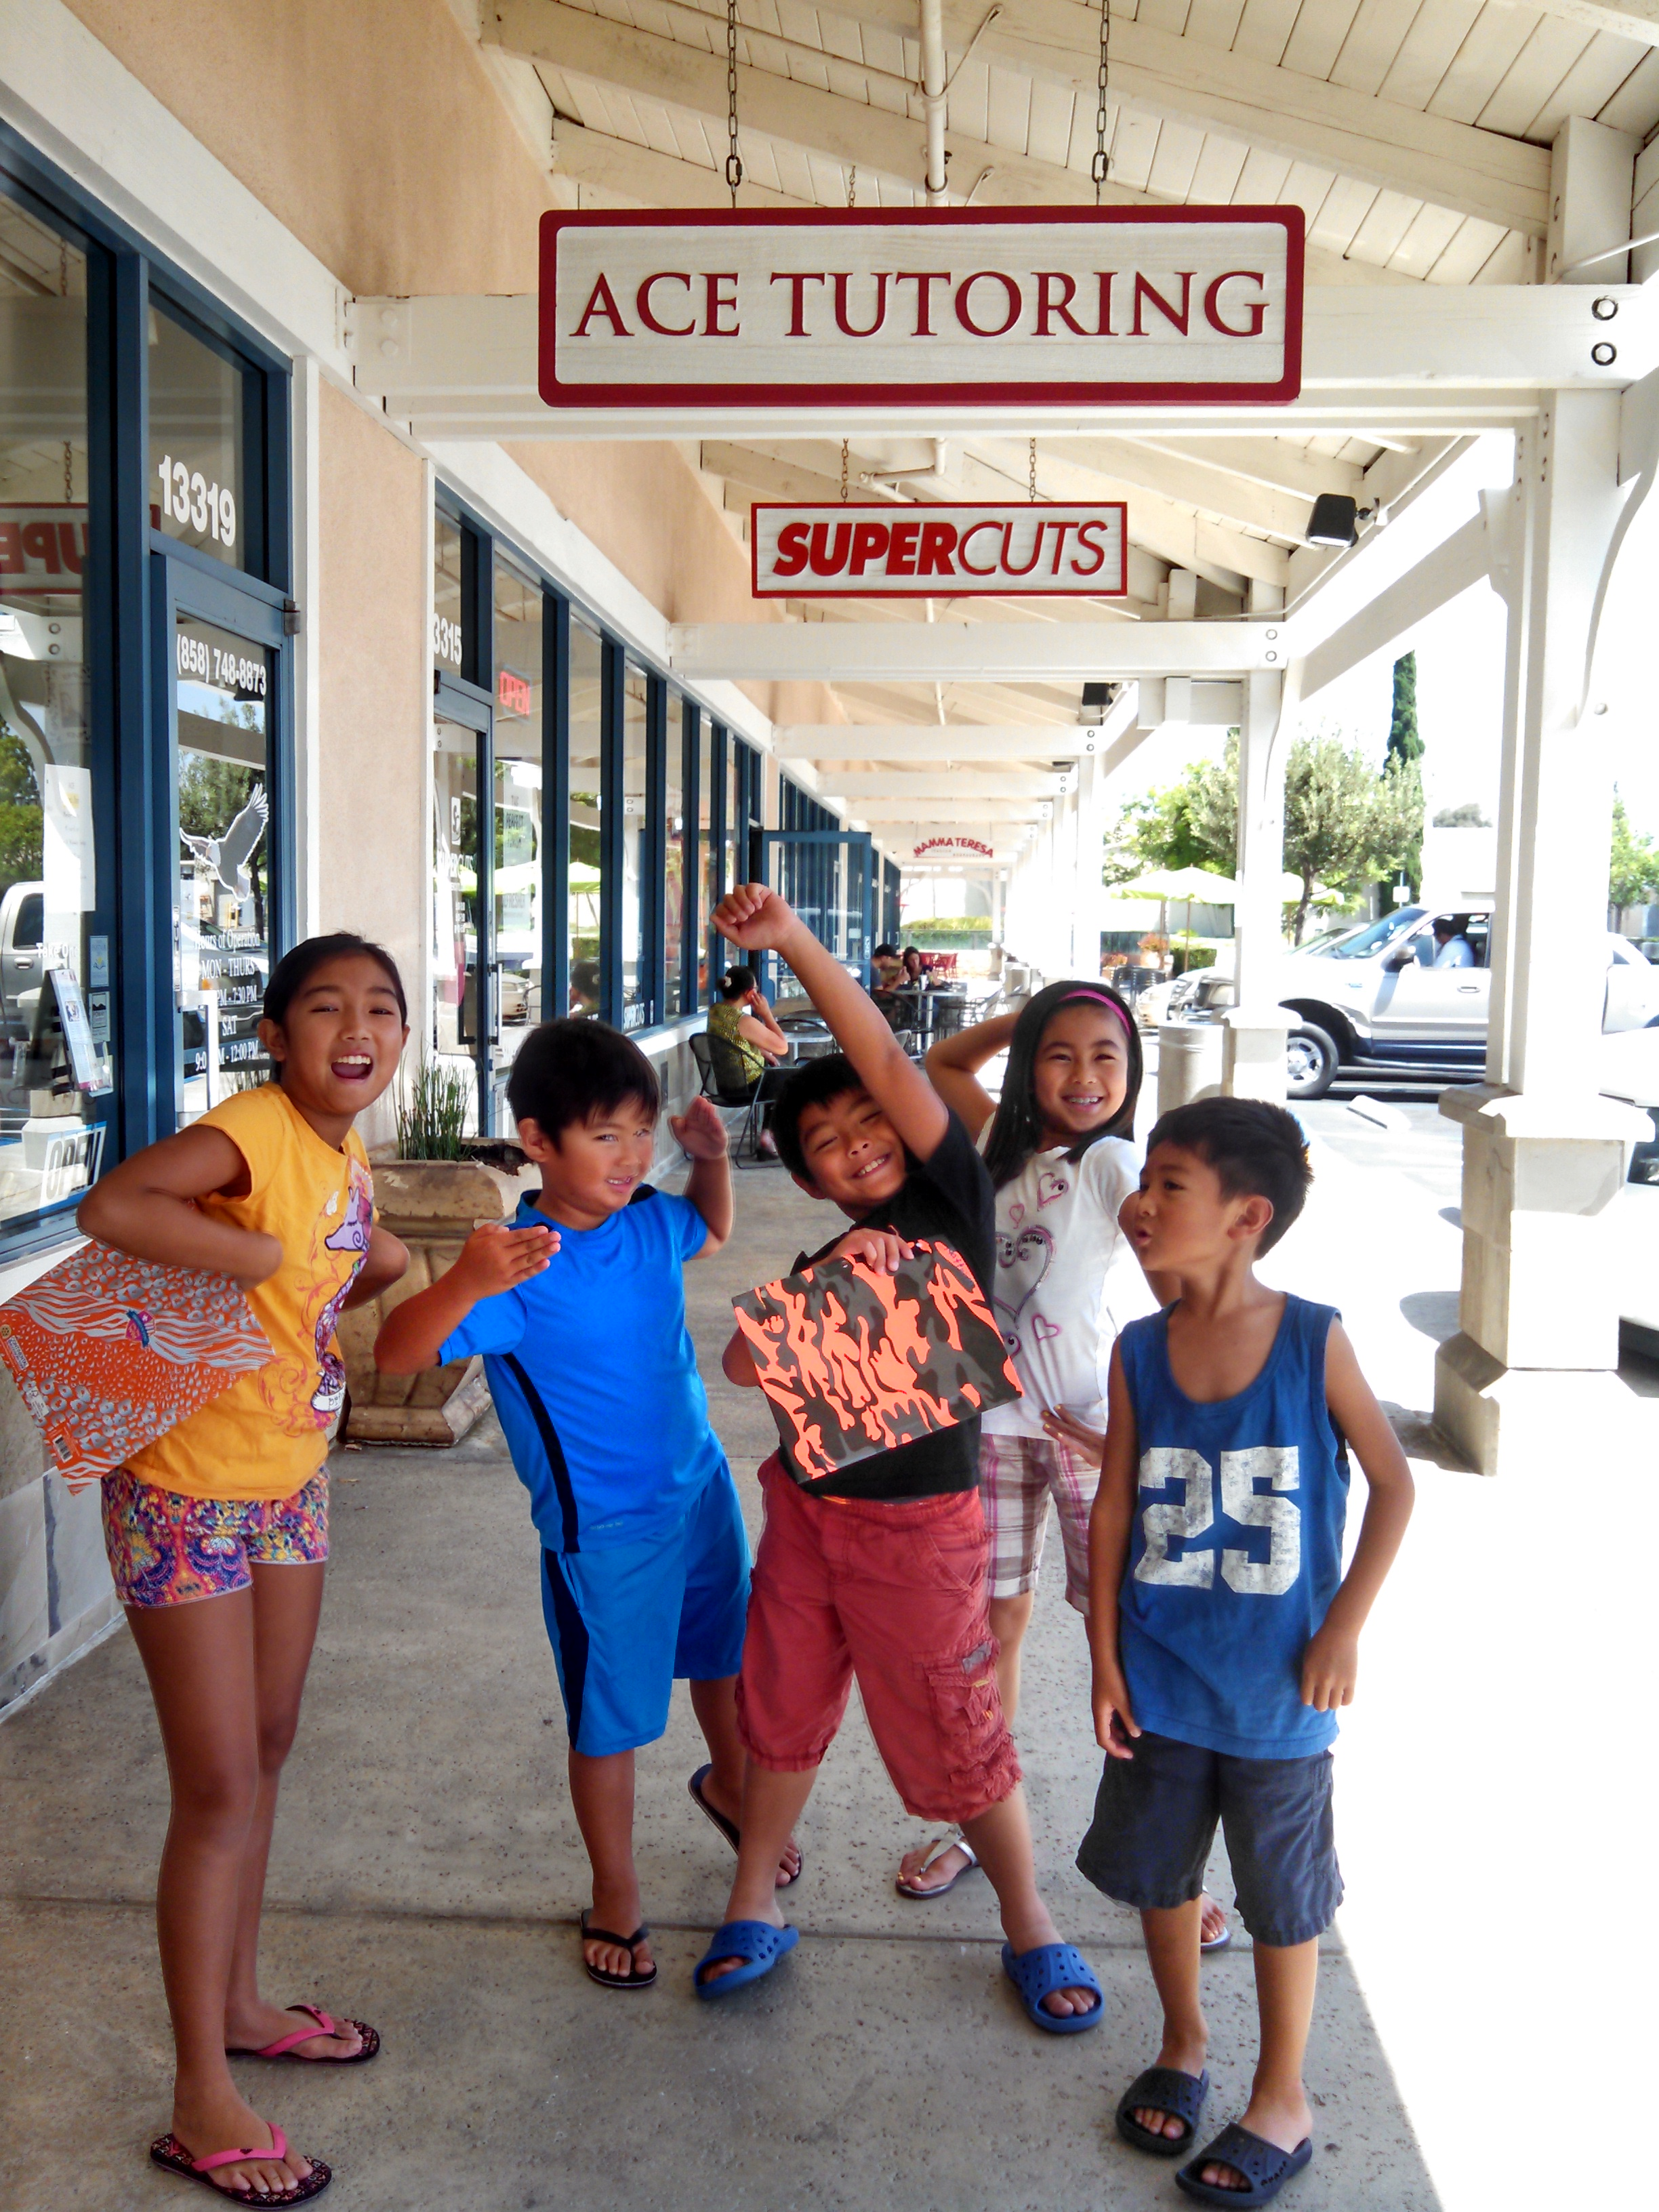 ACE Tutoring San Marcos & ACE Tutoring Poway - 2016 Summer Camp